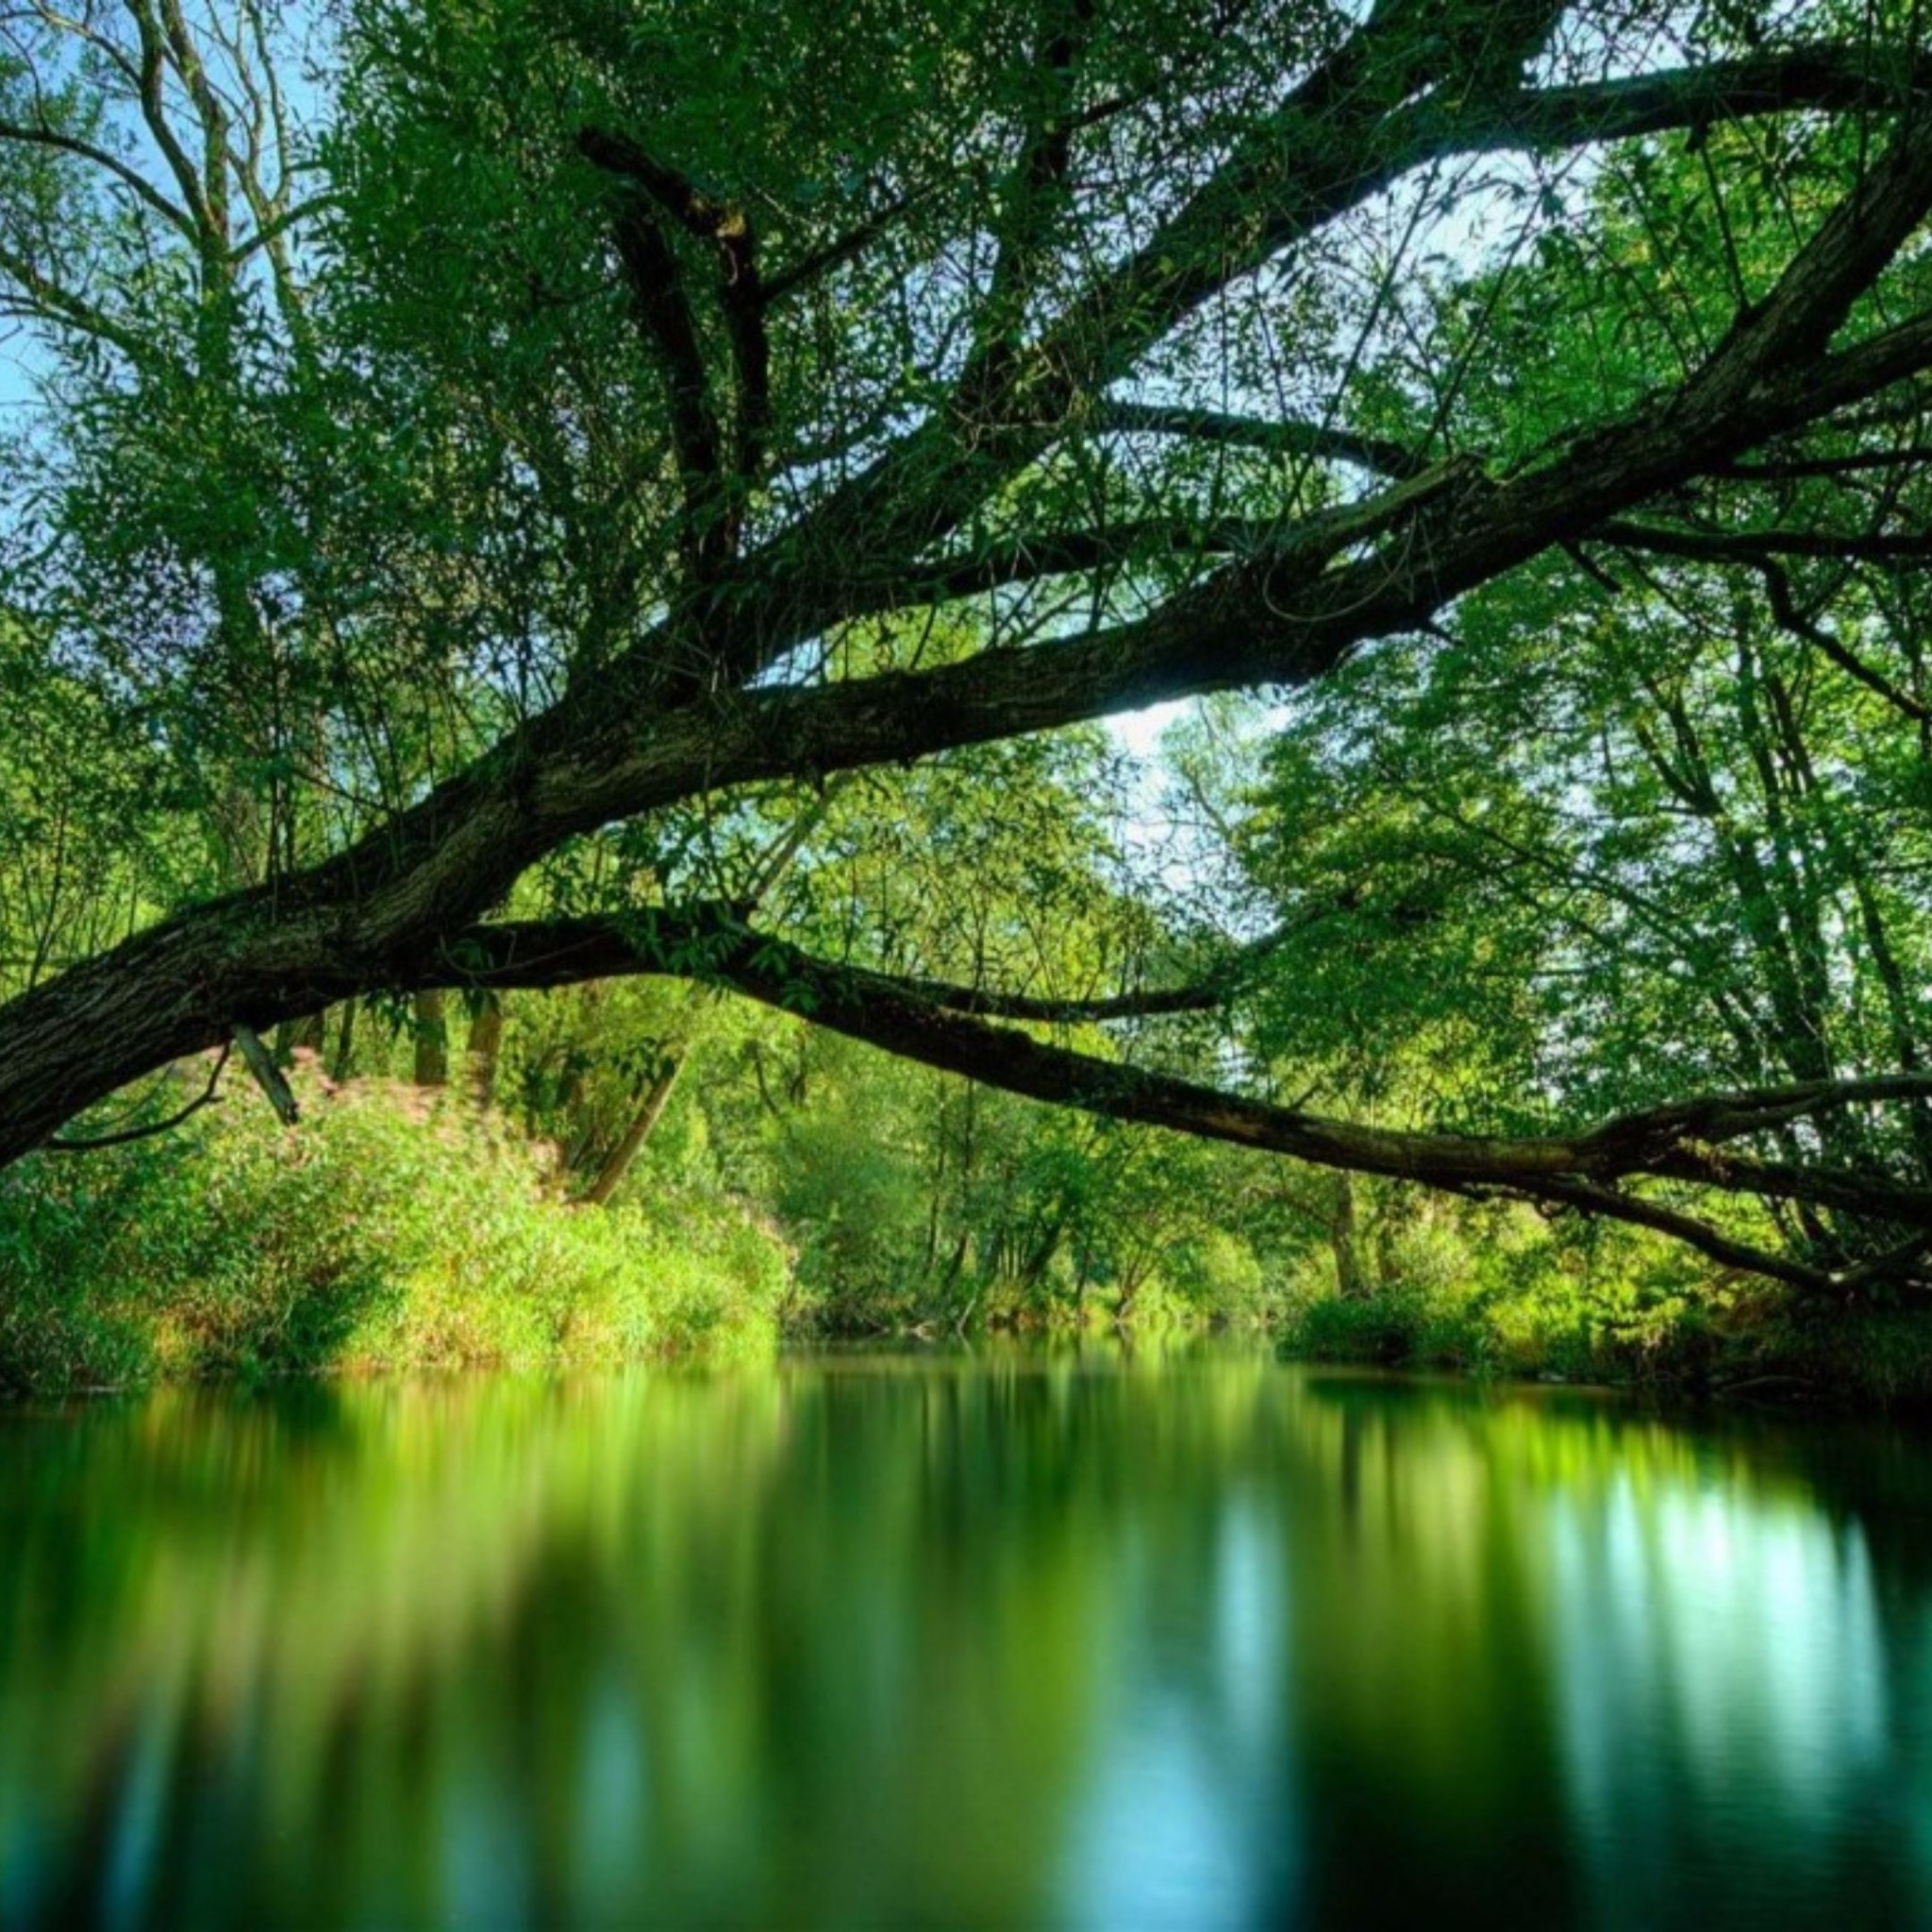 Peaceful Nature Wallpaper (38+ Images